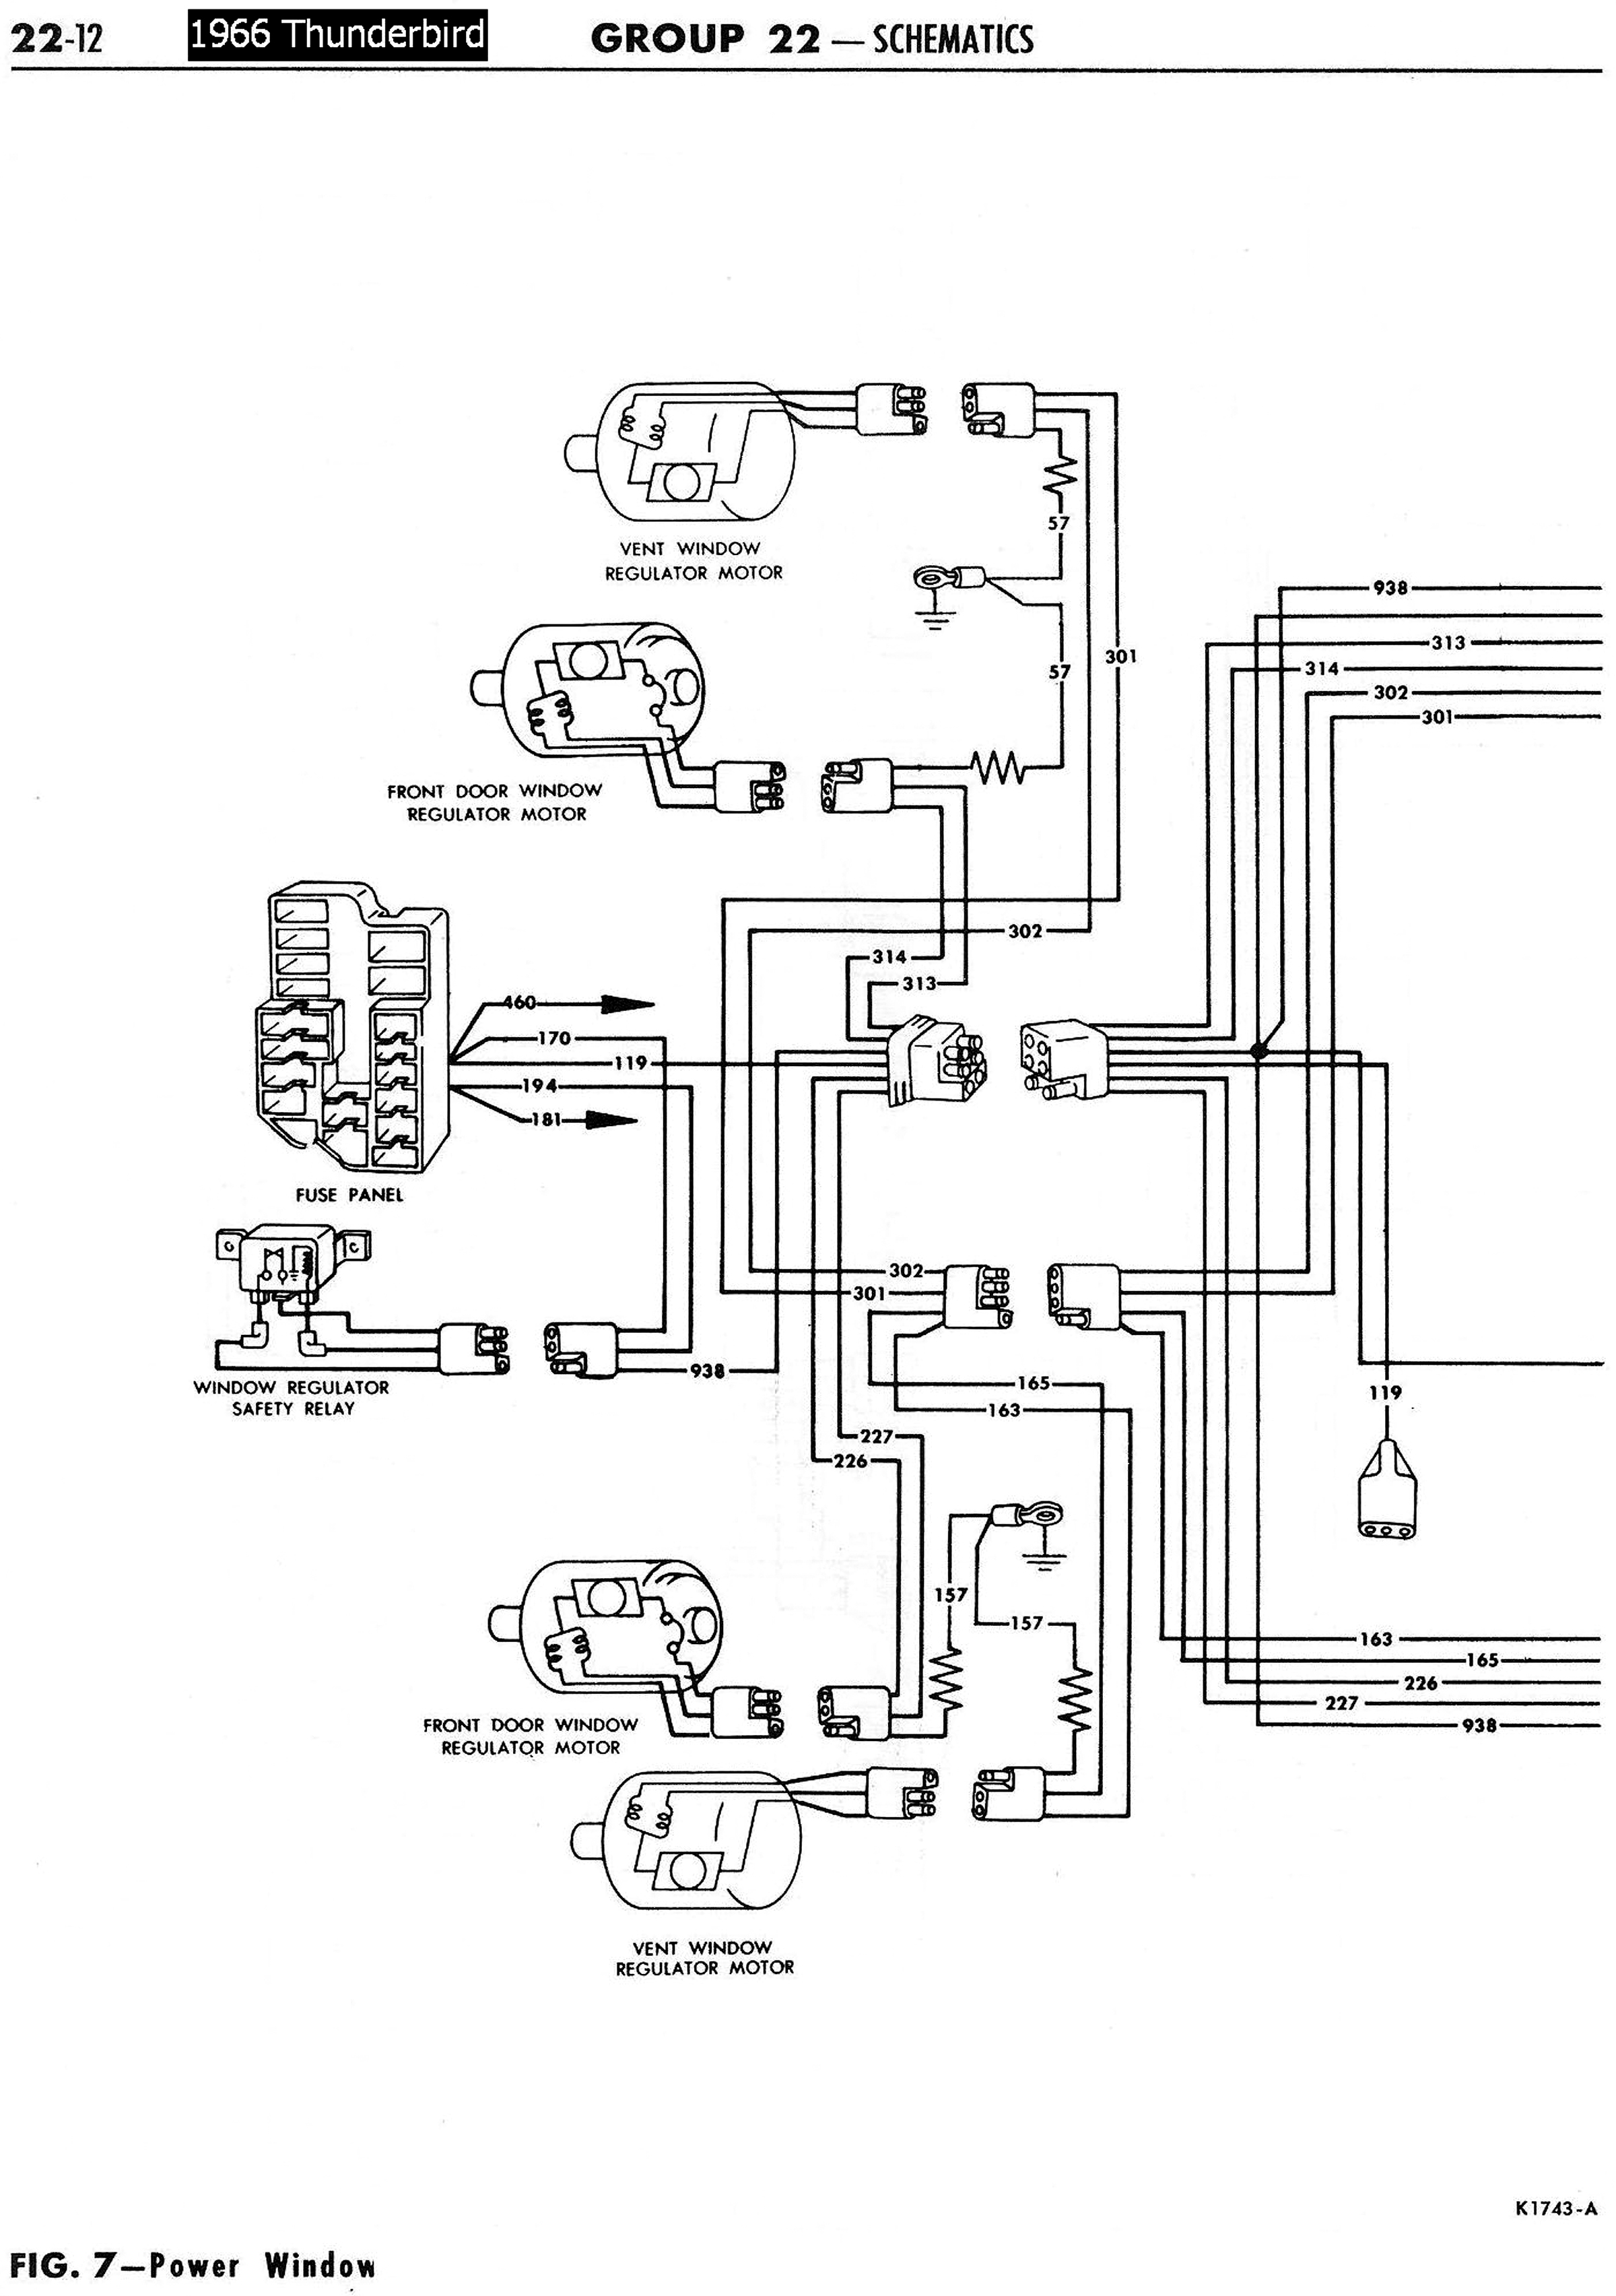 66TbirdPowerWindowsSchematicLeft 1958 68 ford electrical schematics 1955 thunderbird wiring diagram at crackthecode.co